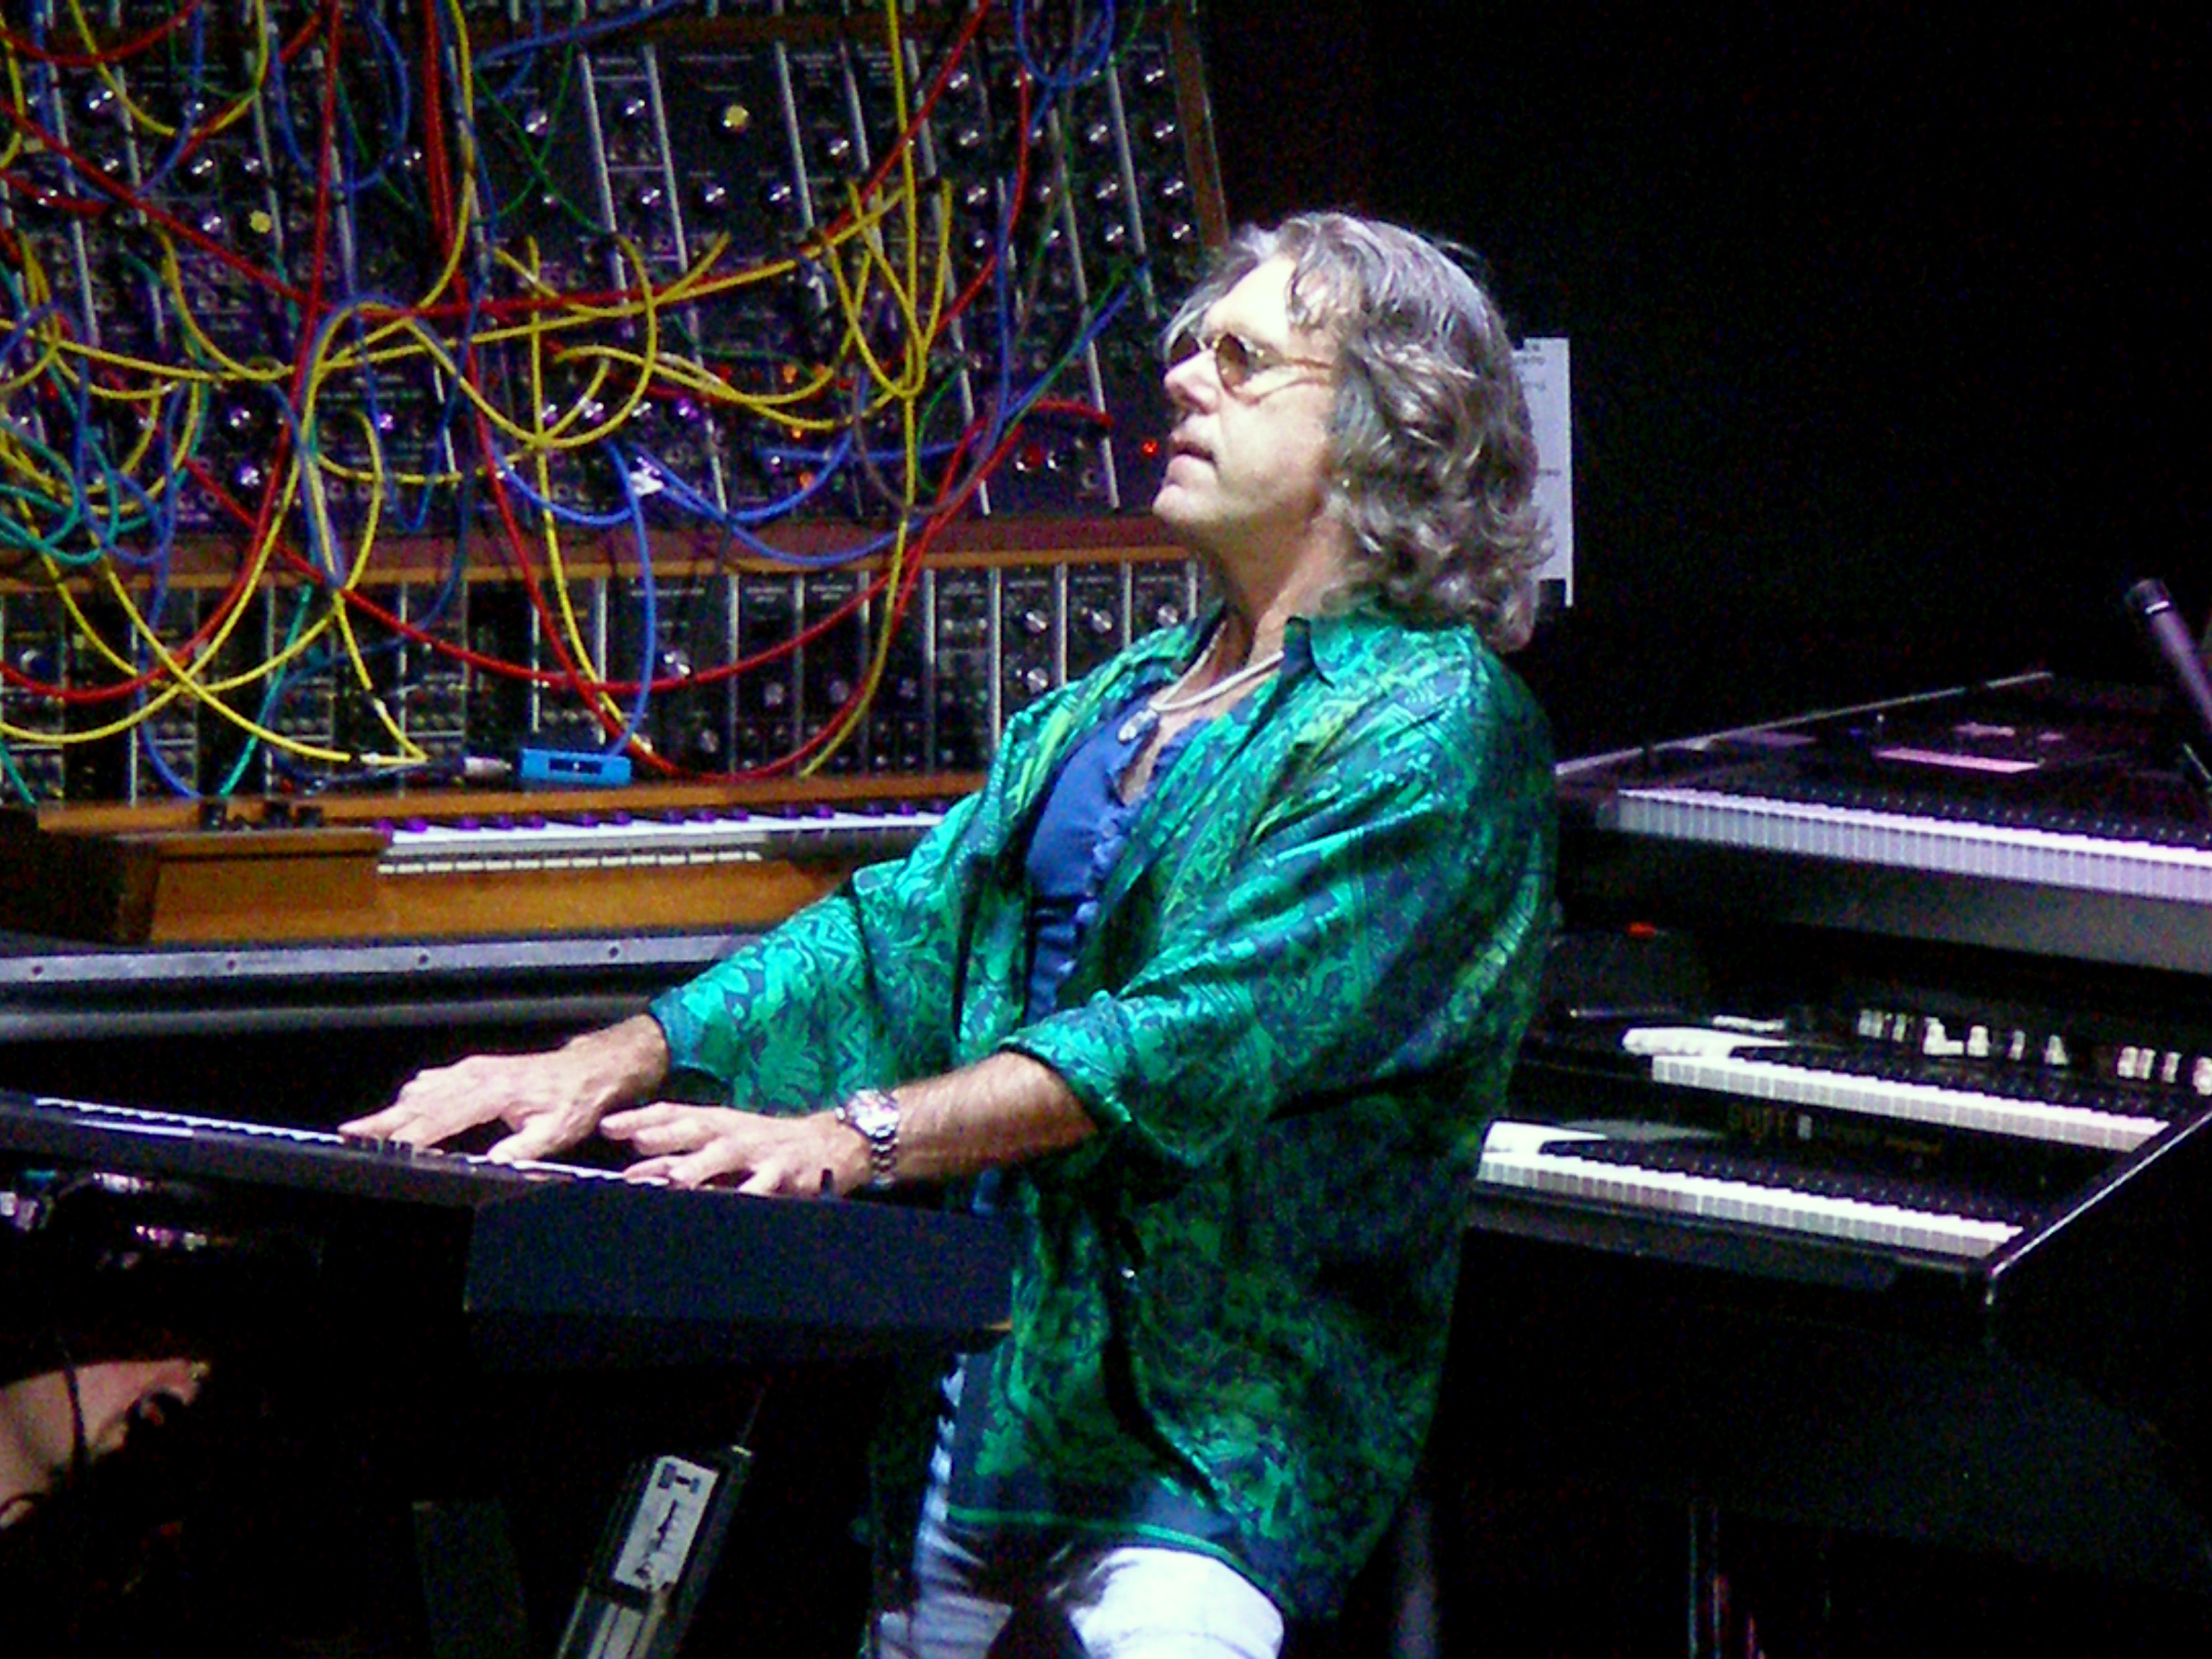 Rip keith emerson keyboardist extraordinaire of emerson for The emerson